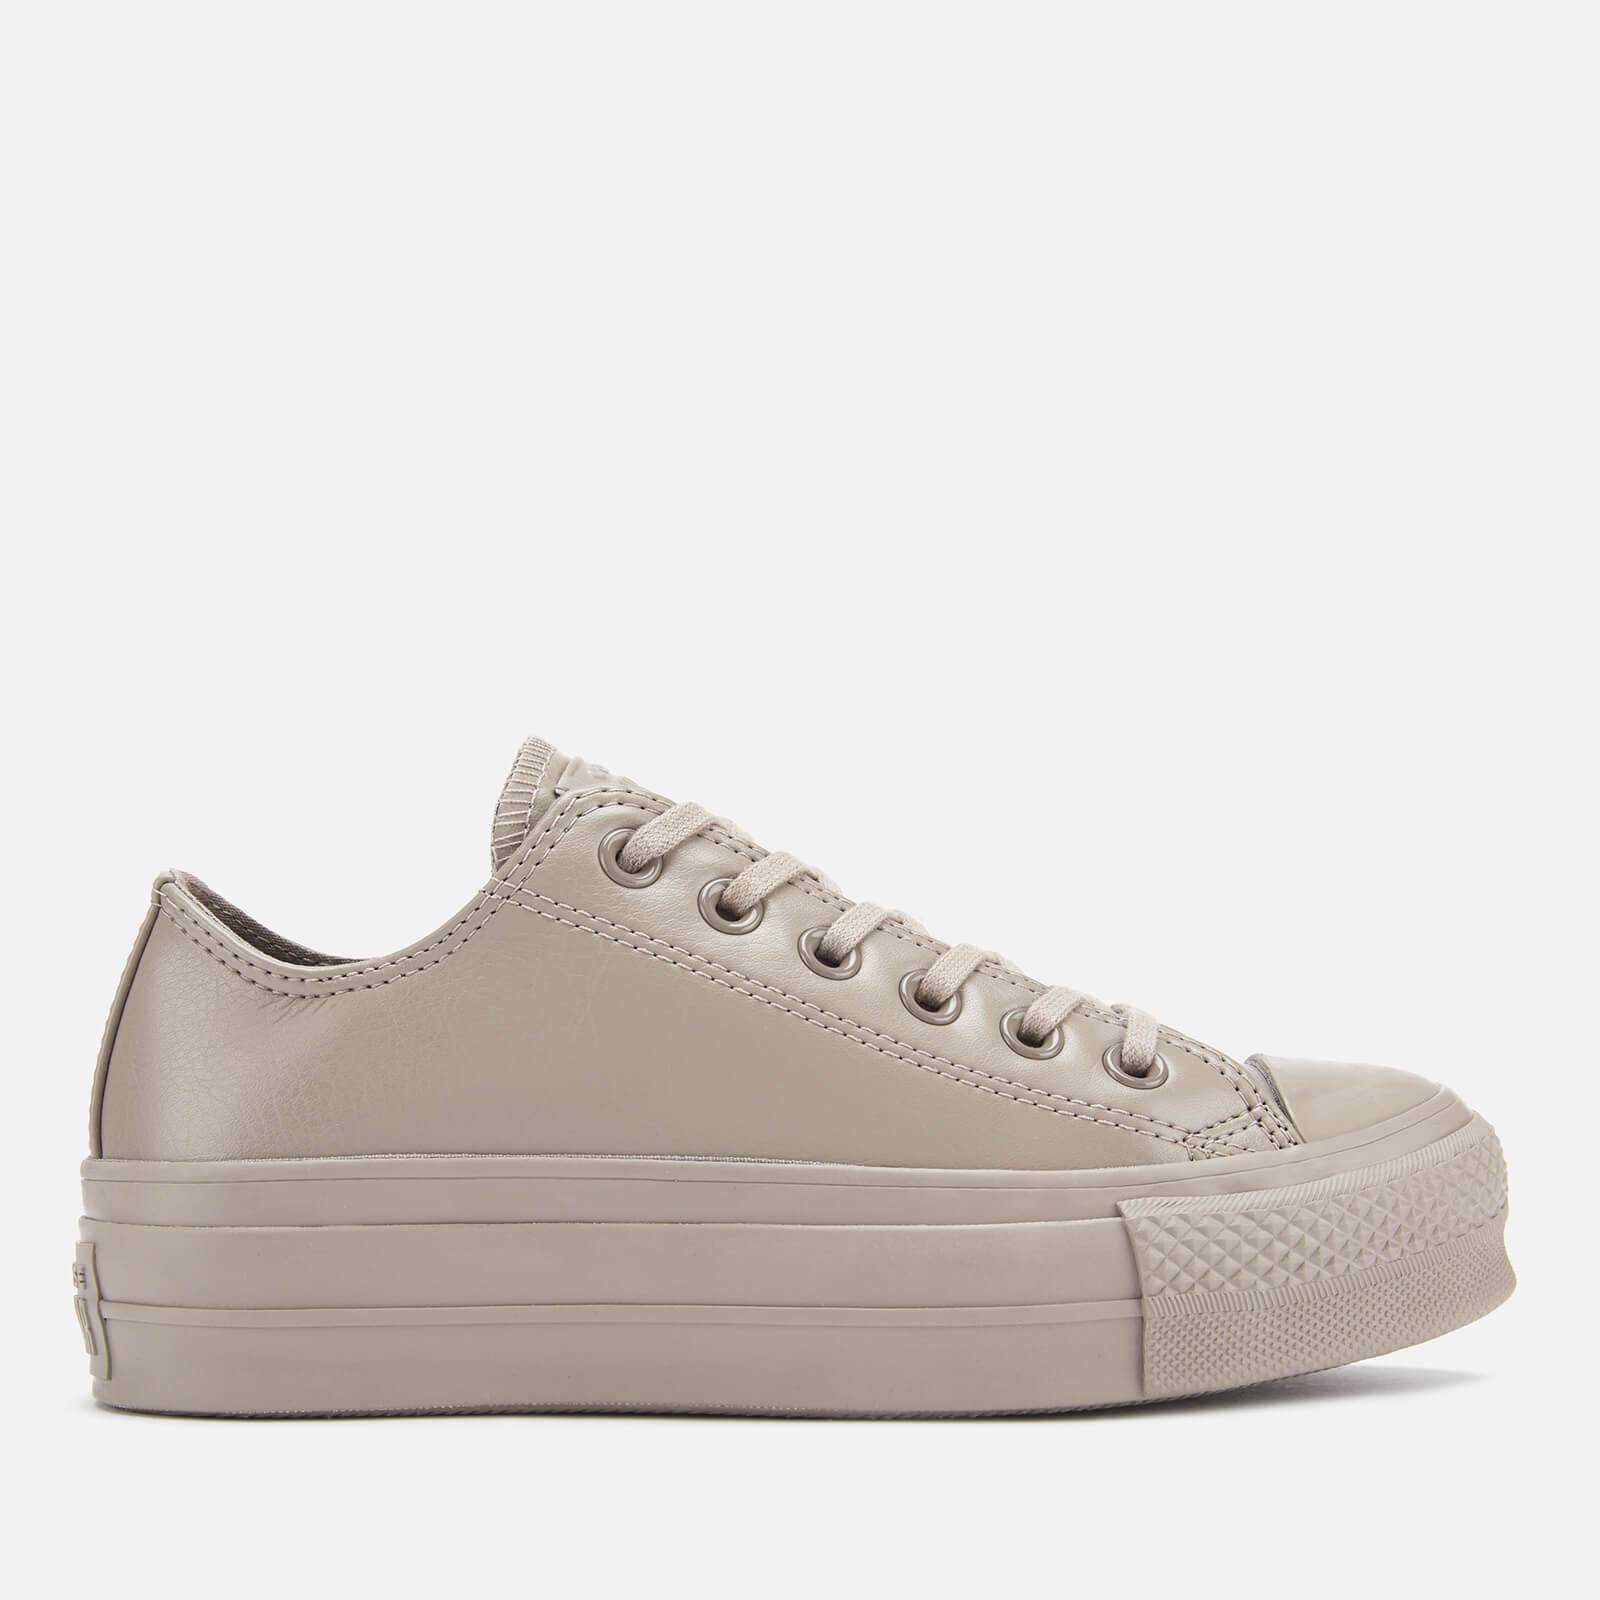 Converse Women's Chuck Taylor All Star Lift Ox Trainers - Sepia Stone/Sepia Stone - UK 5 - Brown